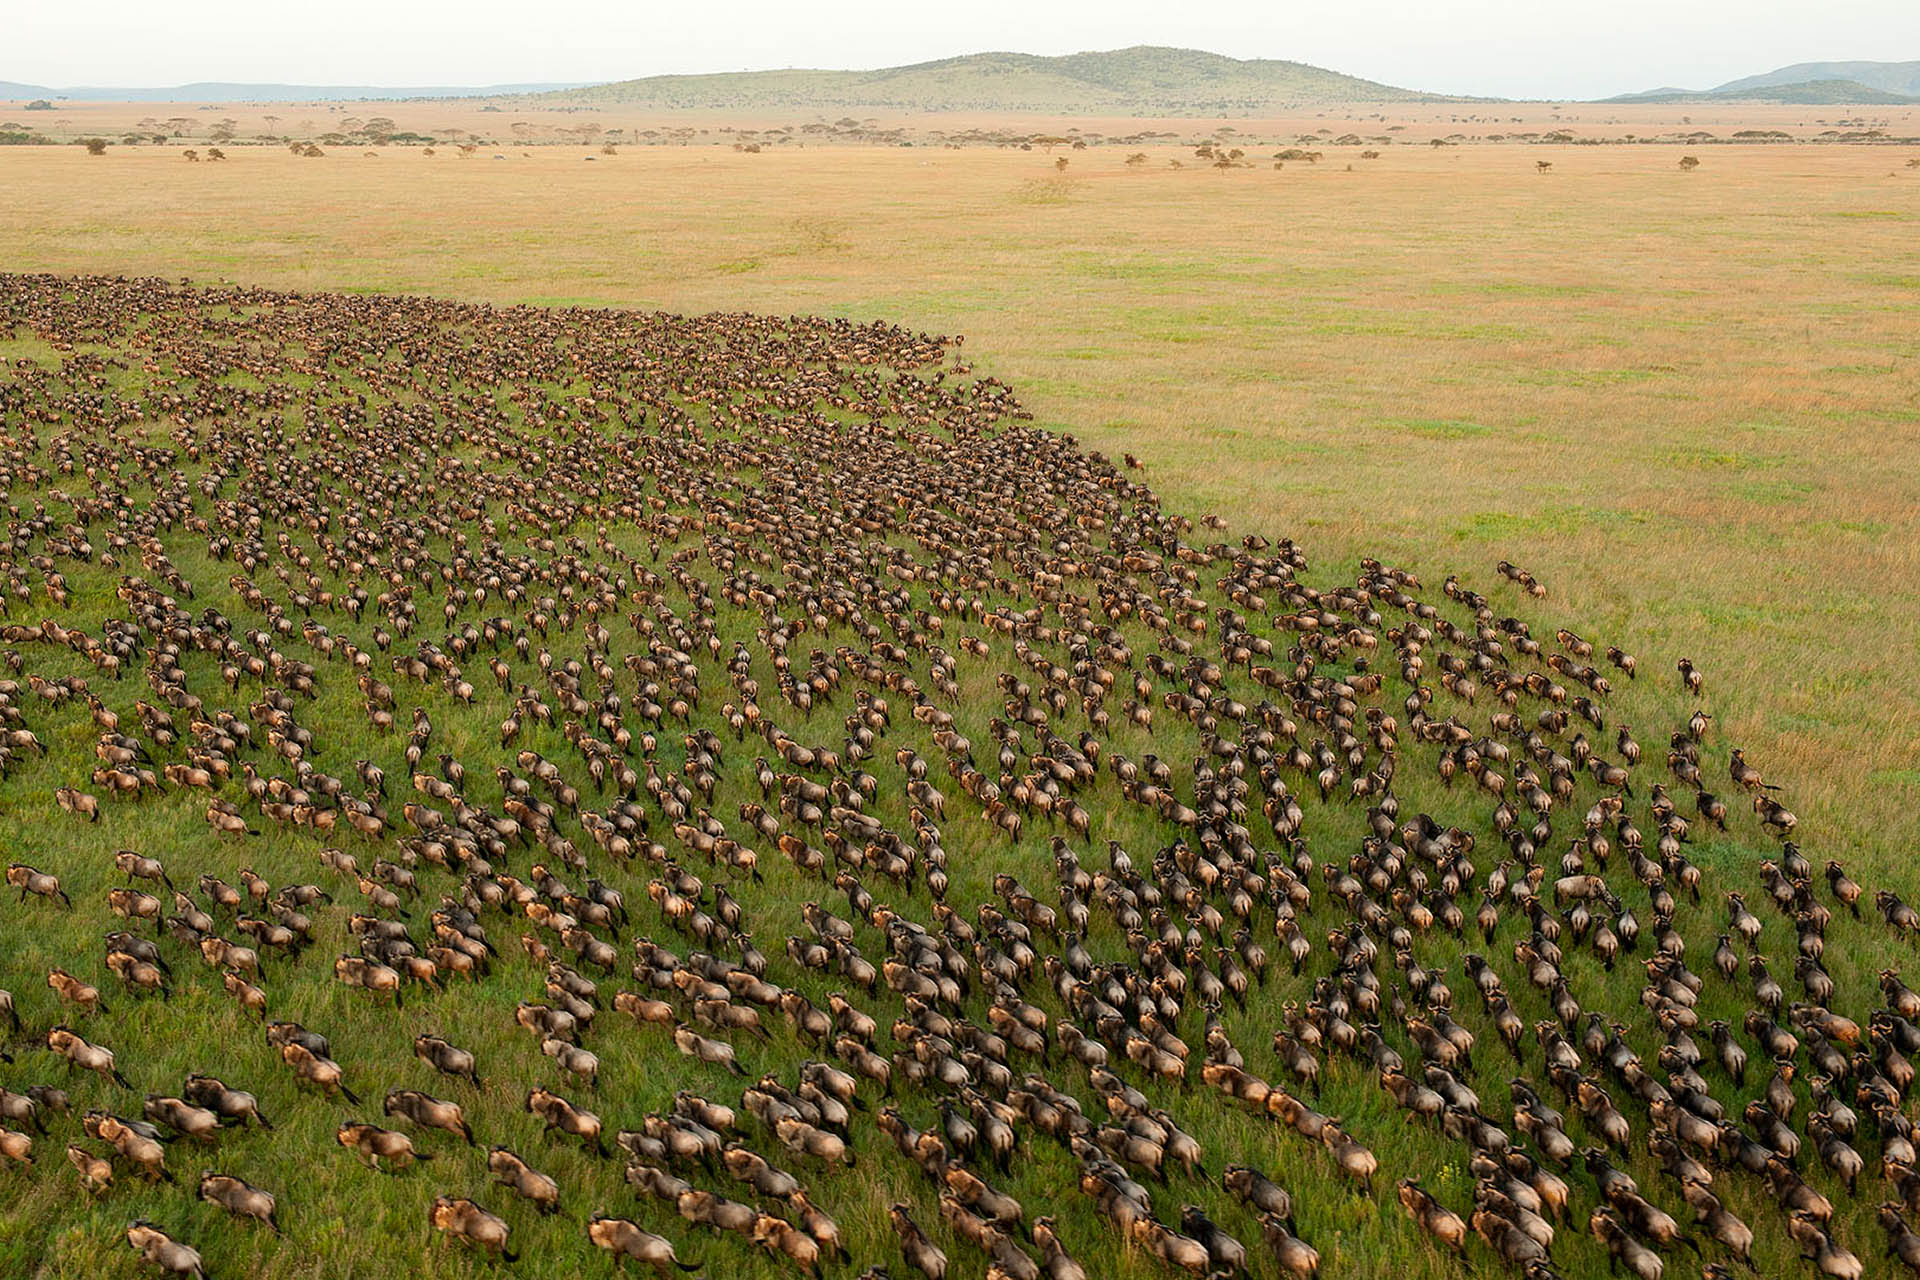 contact-maasai-wanderings-safari-itineraries-signature-photo-safaris-africa-wildebeest